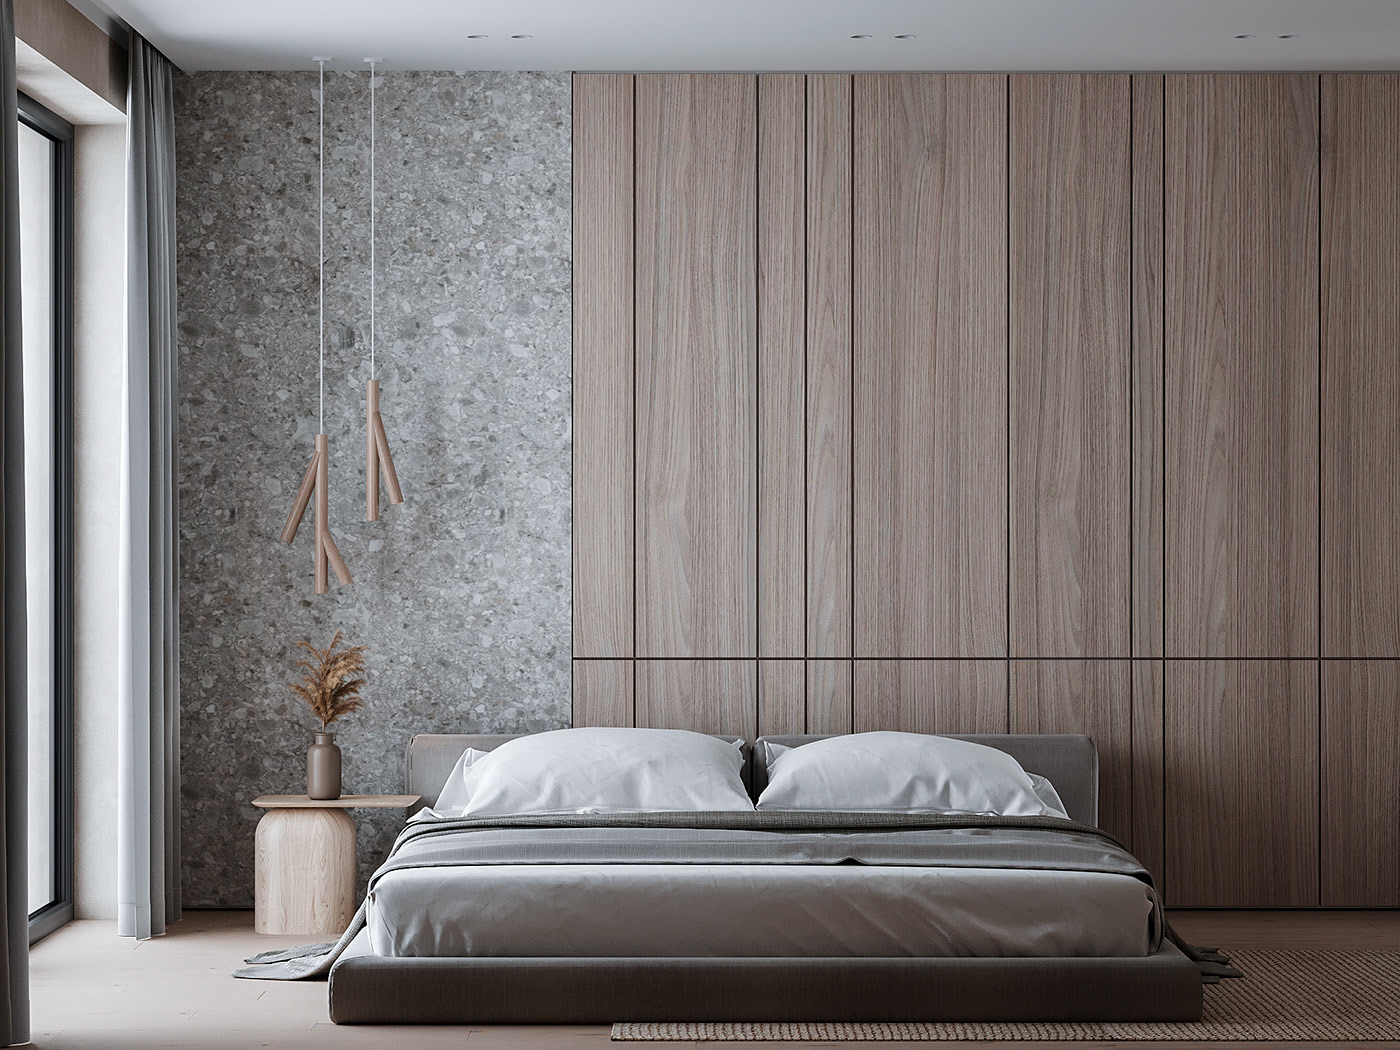 bedroom with minimalist style design in neutral colors